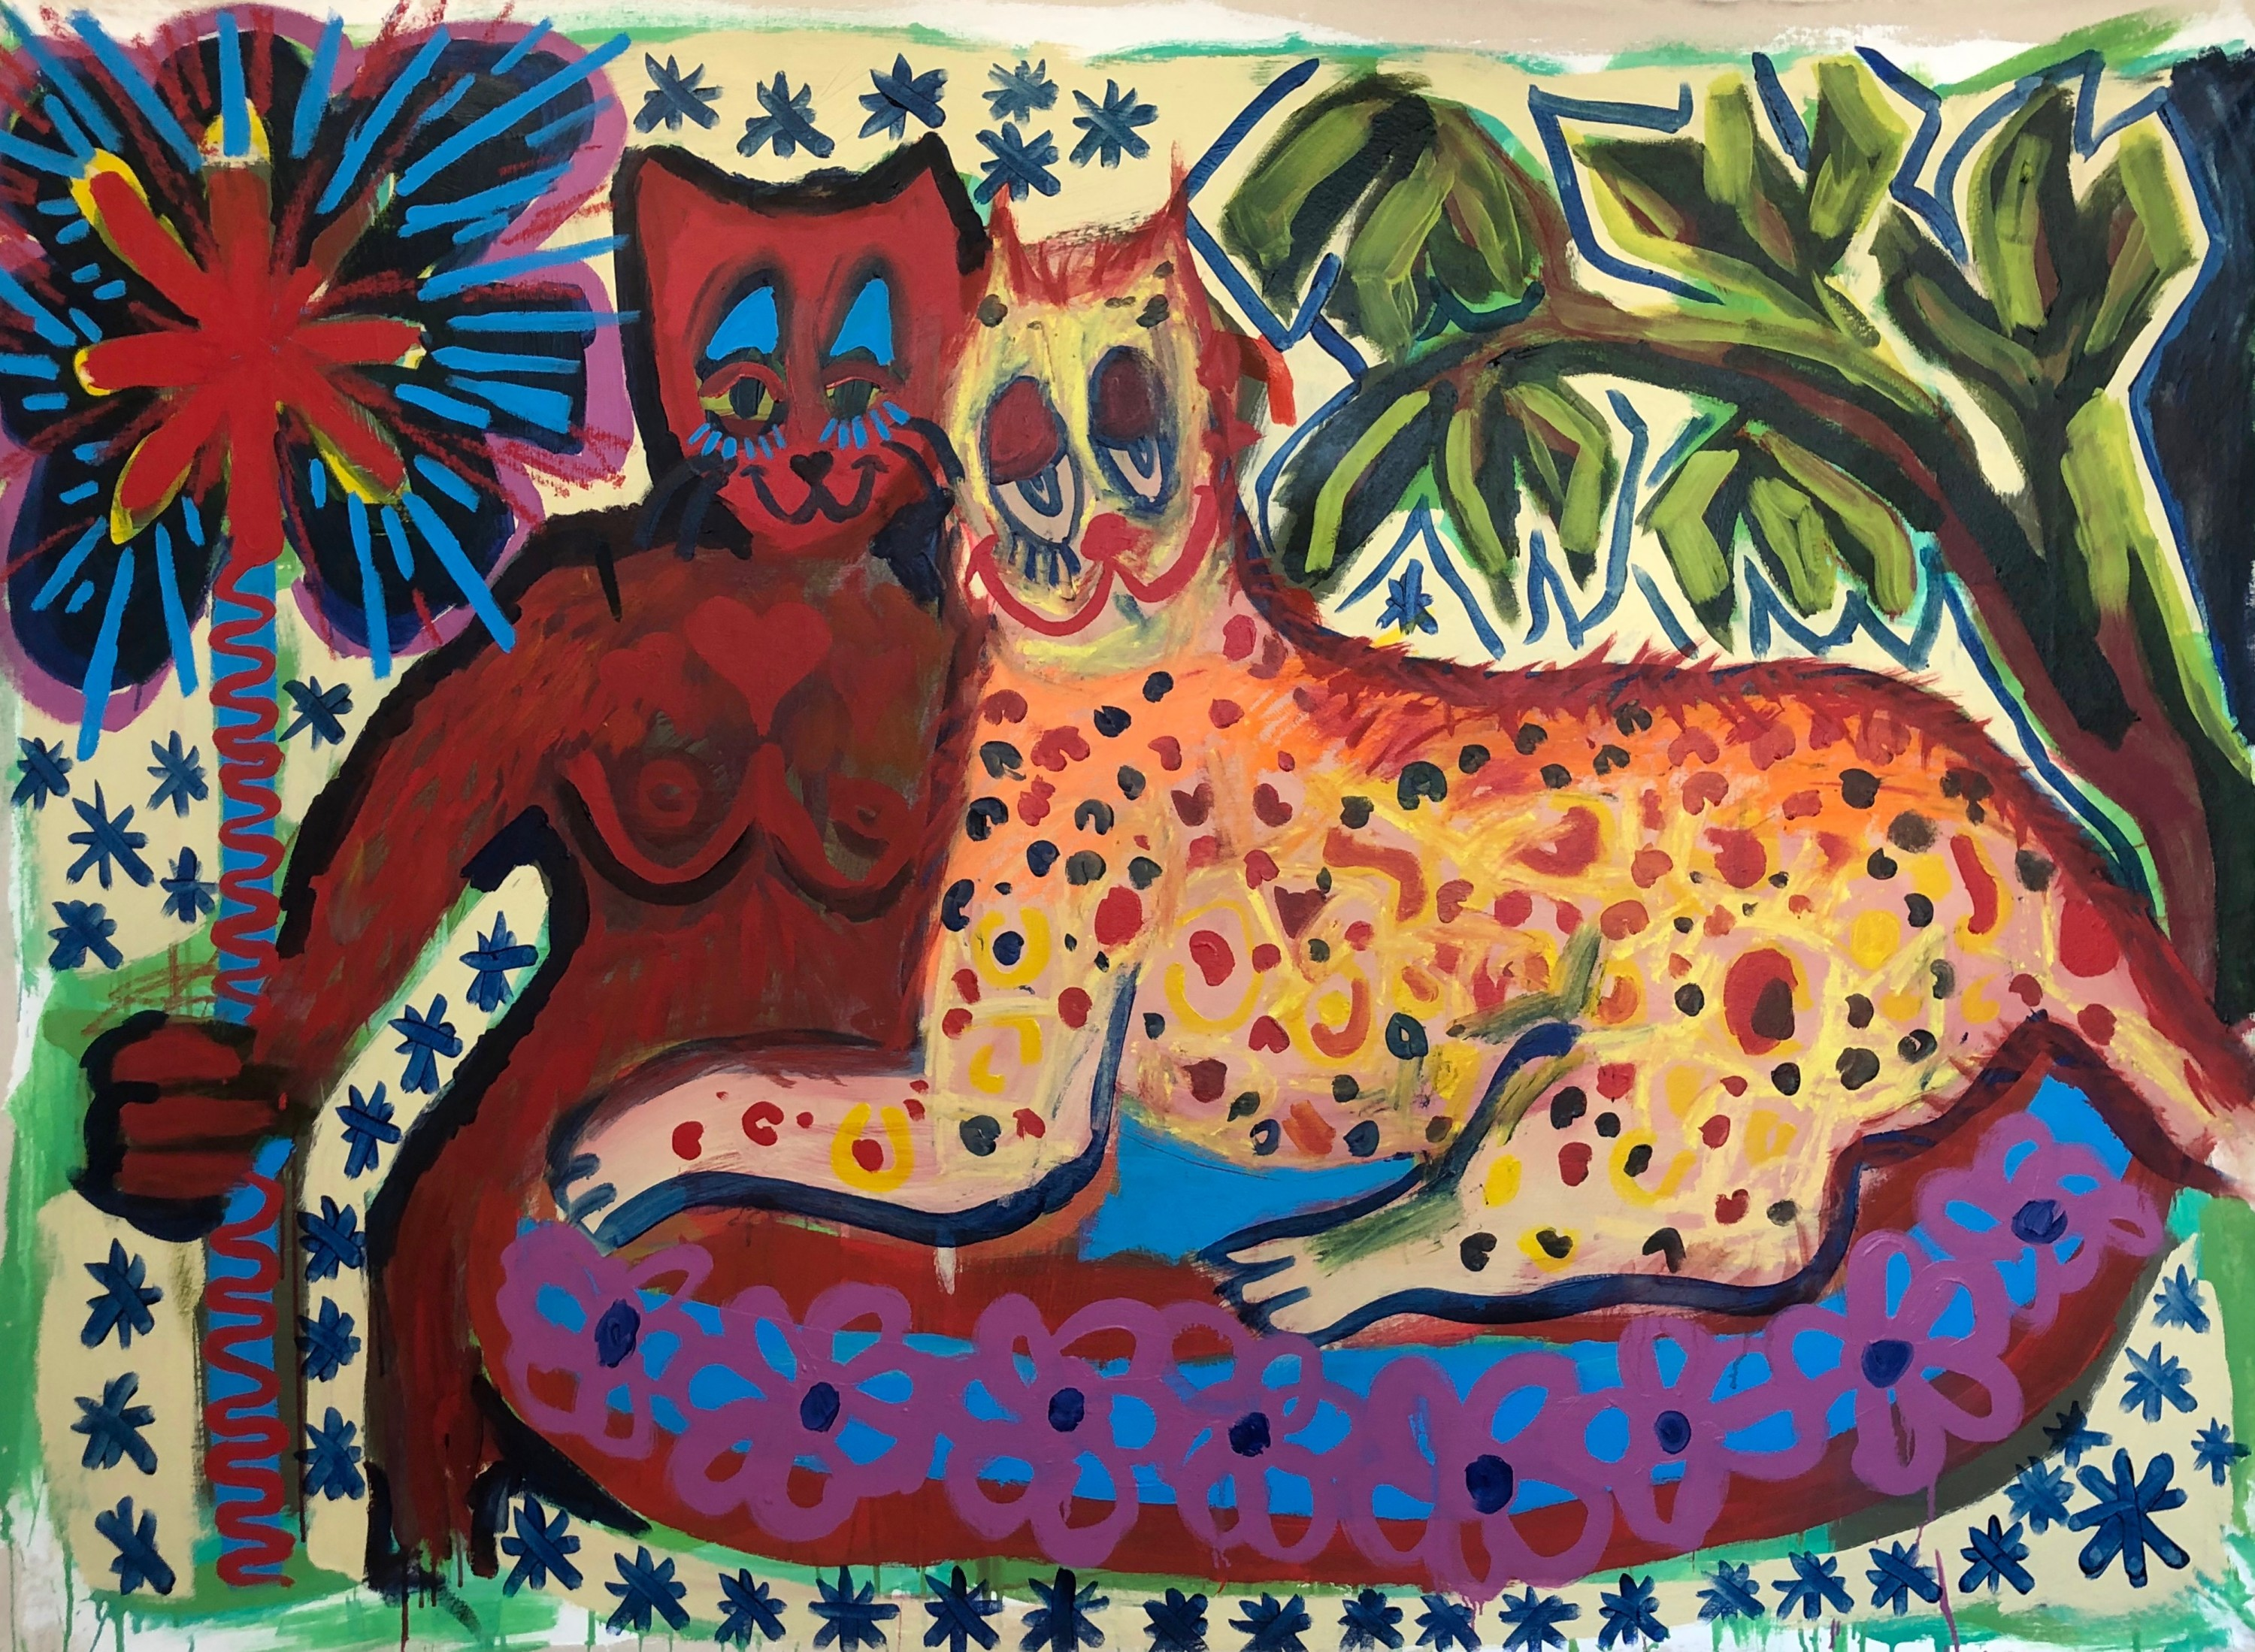 """A horizontal 48"""" x 72"""" painting depicts two cartoon like cats. The left, yellow and leopard print cat lounged on a bright floral carpet, is being embraced by the right cat. The right cat holds a star wand. Small stars are painted in the backgrou"""